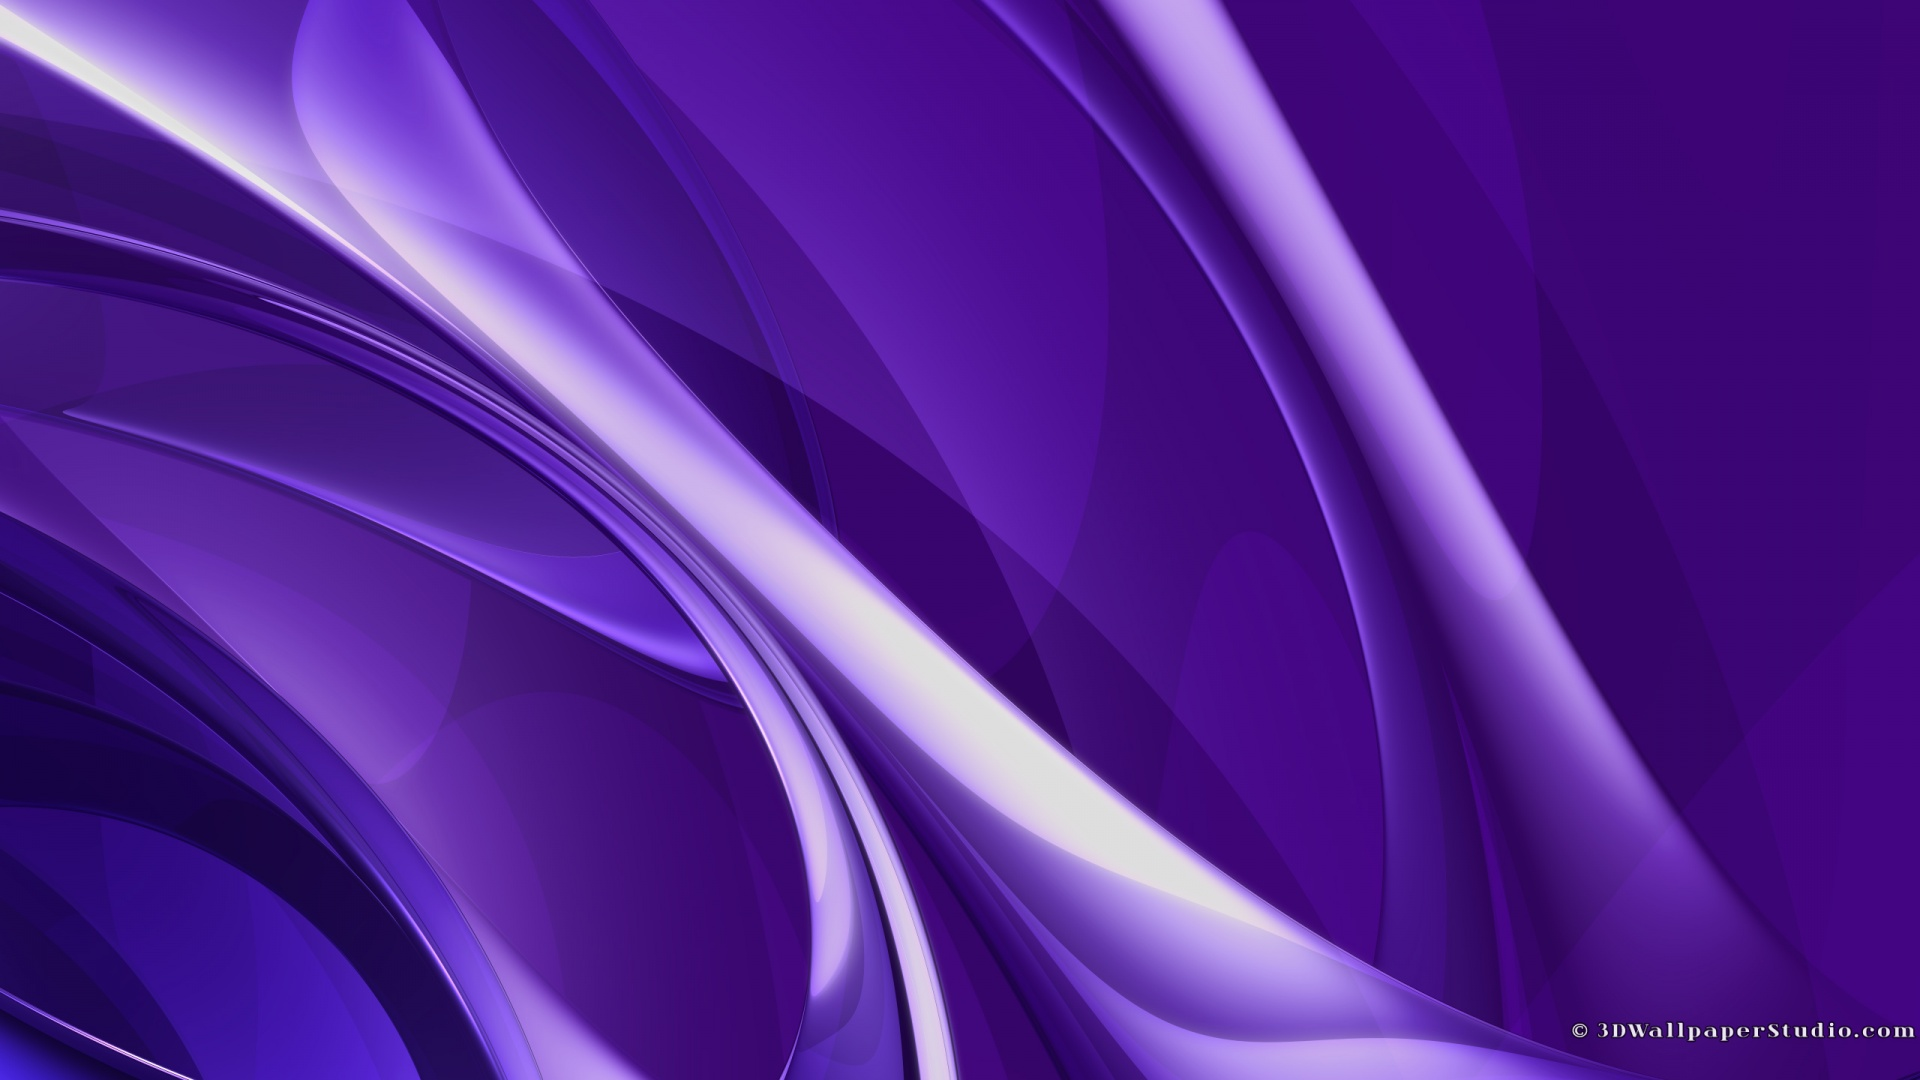 Ps Vita Cool 3d Abstract Wallpaper Wallpaper